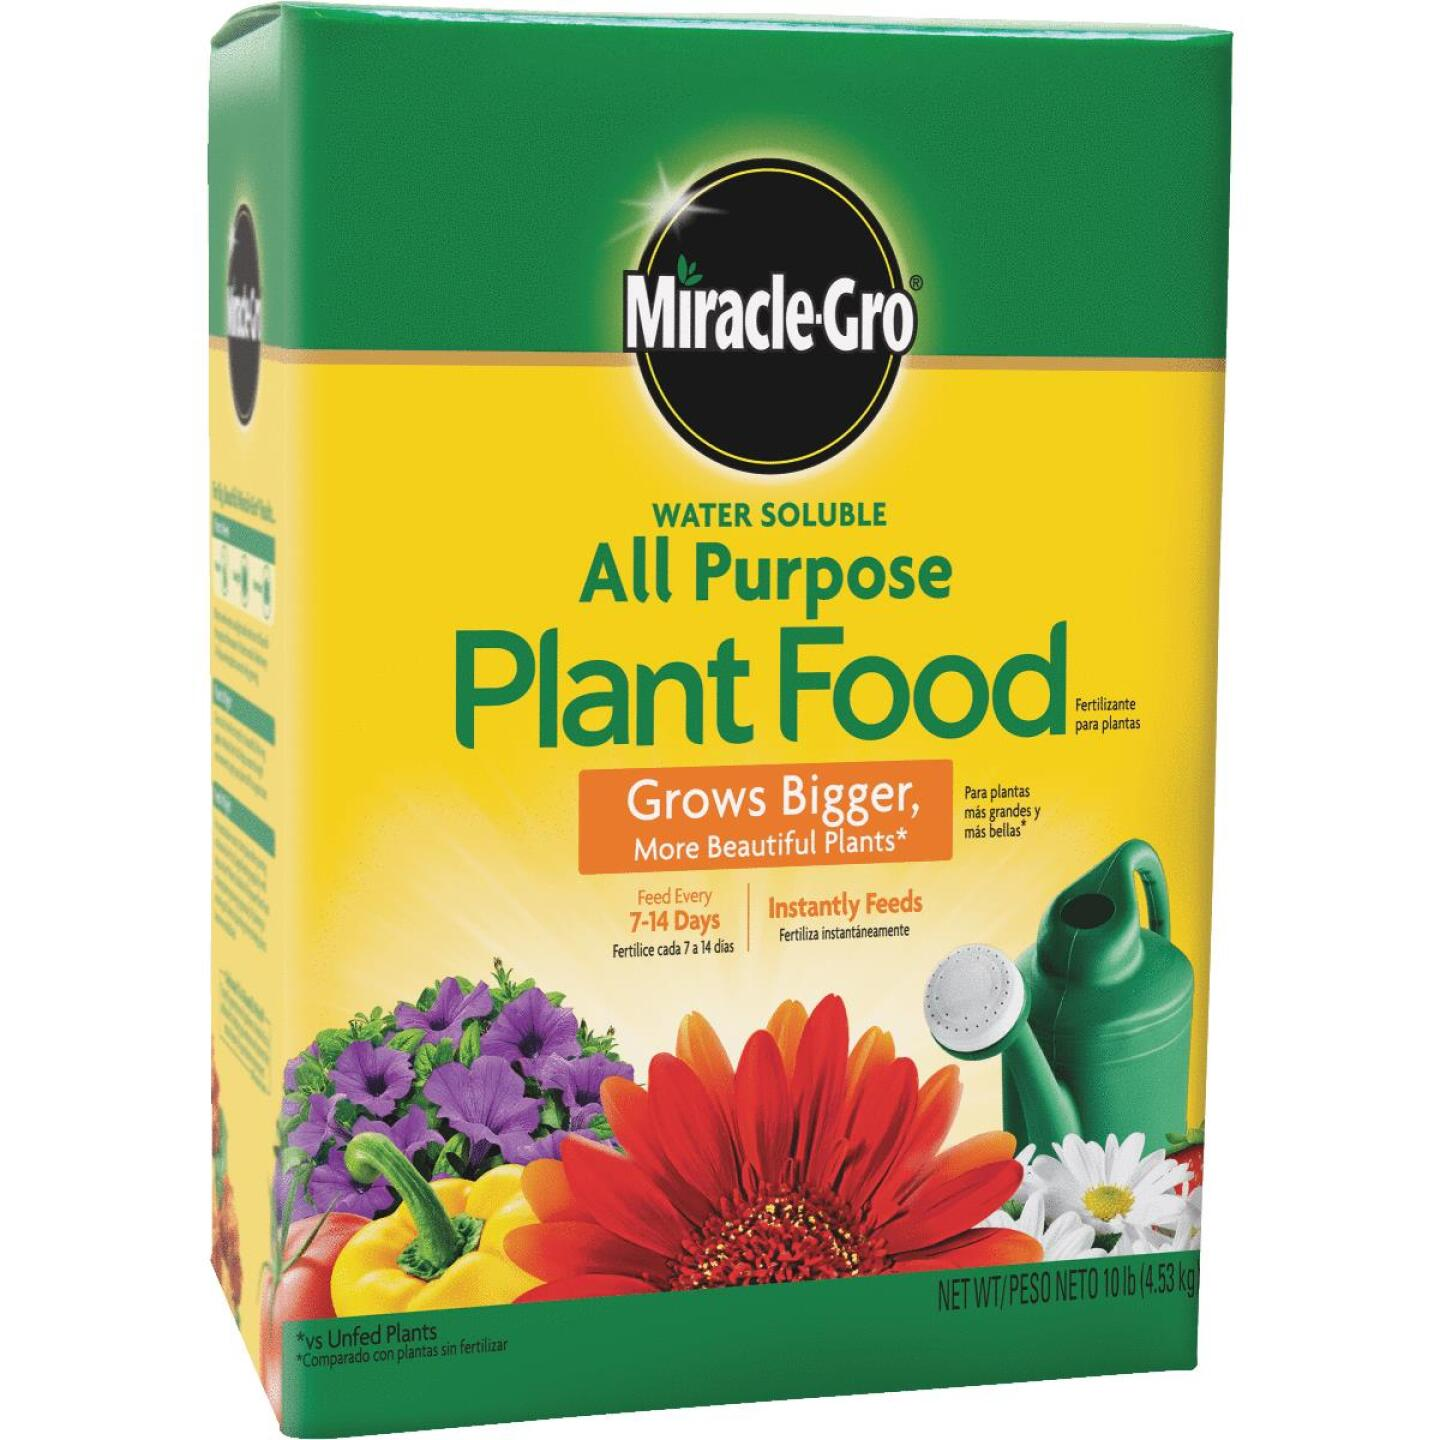 Miracle-Gro 10 Lb. 24-8-16 All Purpose Dry Plant Food Image 1